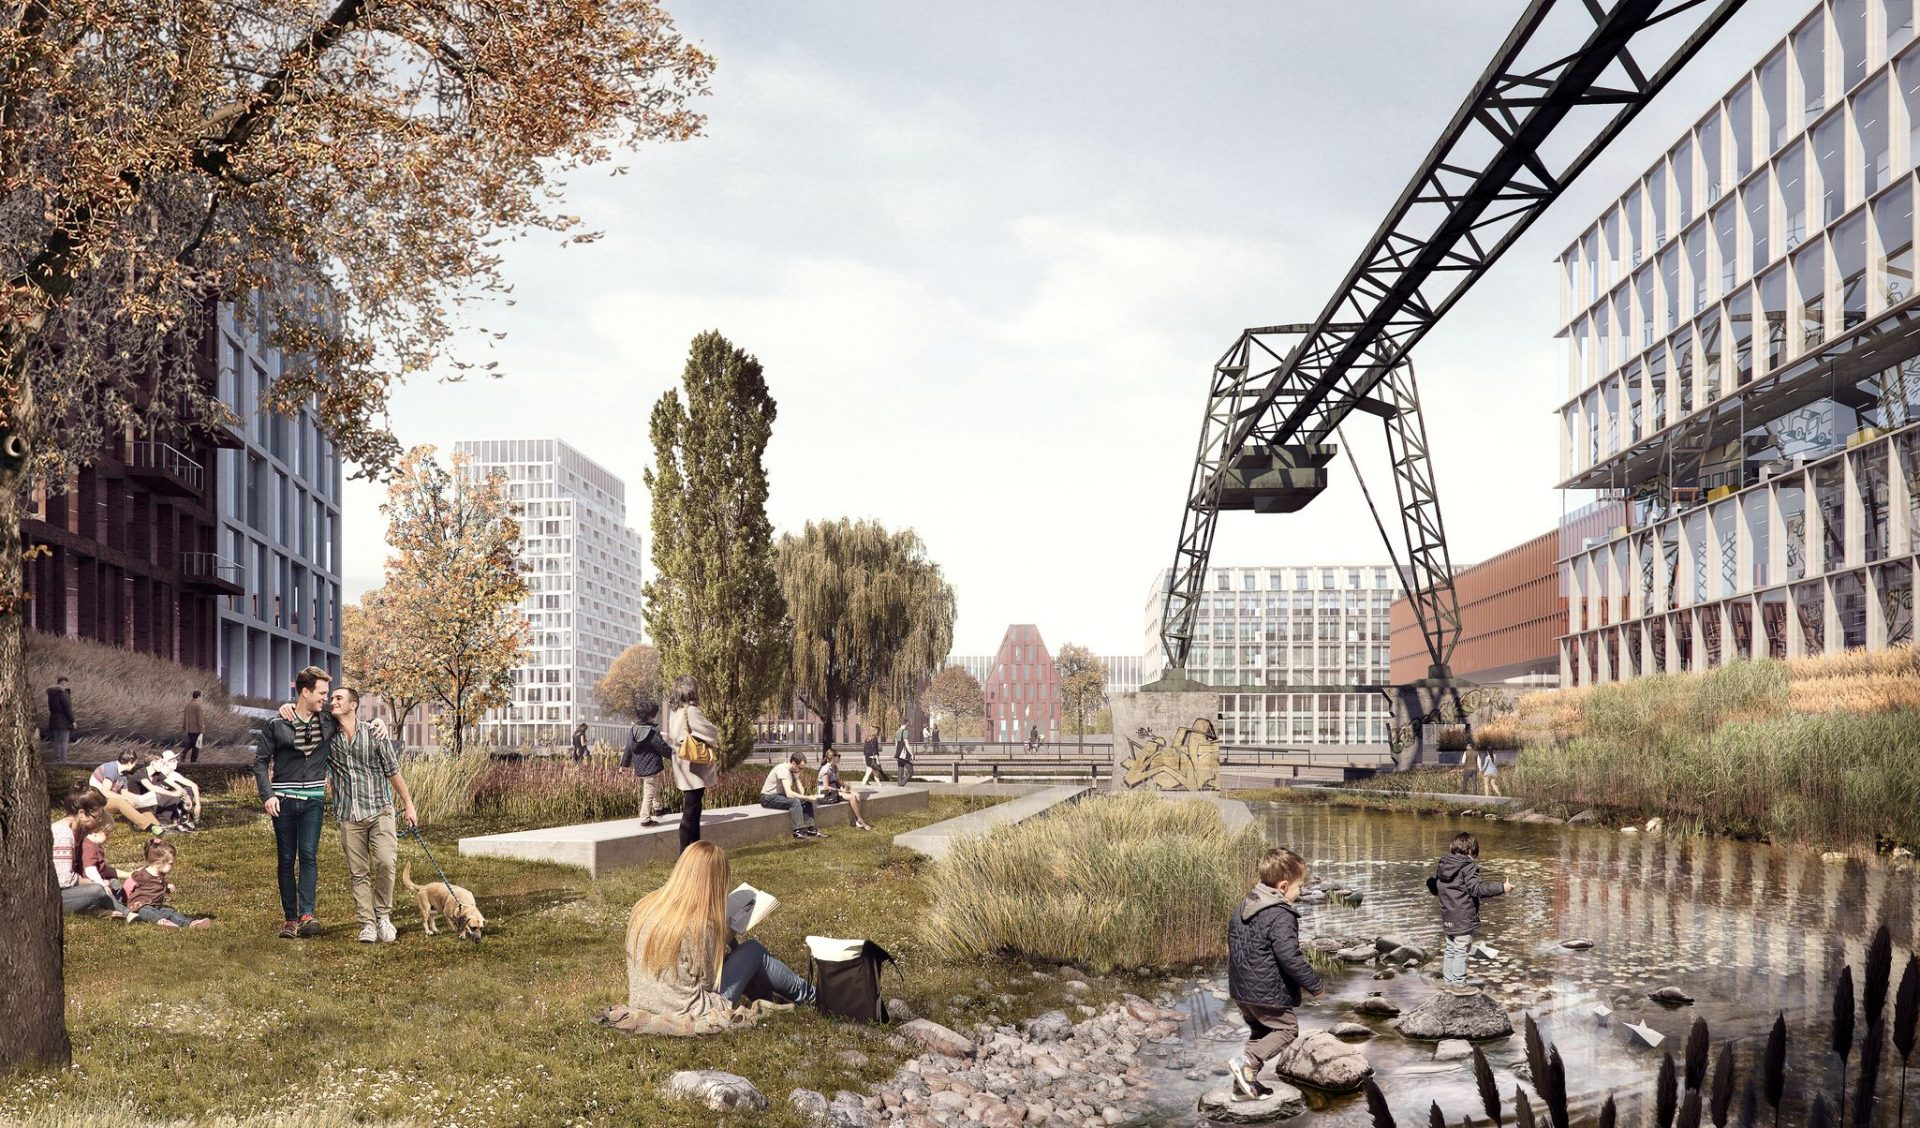 Old cranes, new architecture and water in the green areas: cobe's vision for the harbor transformation in Cologne. Photo by: ©cobe